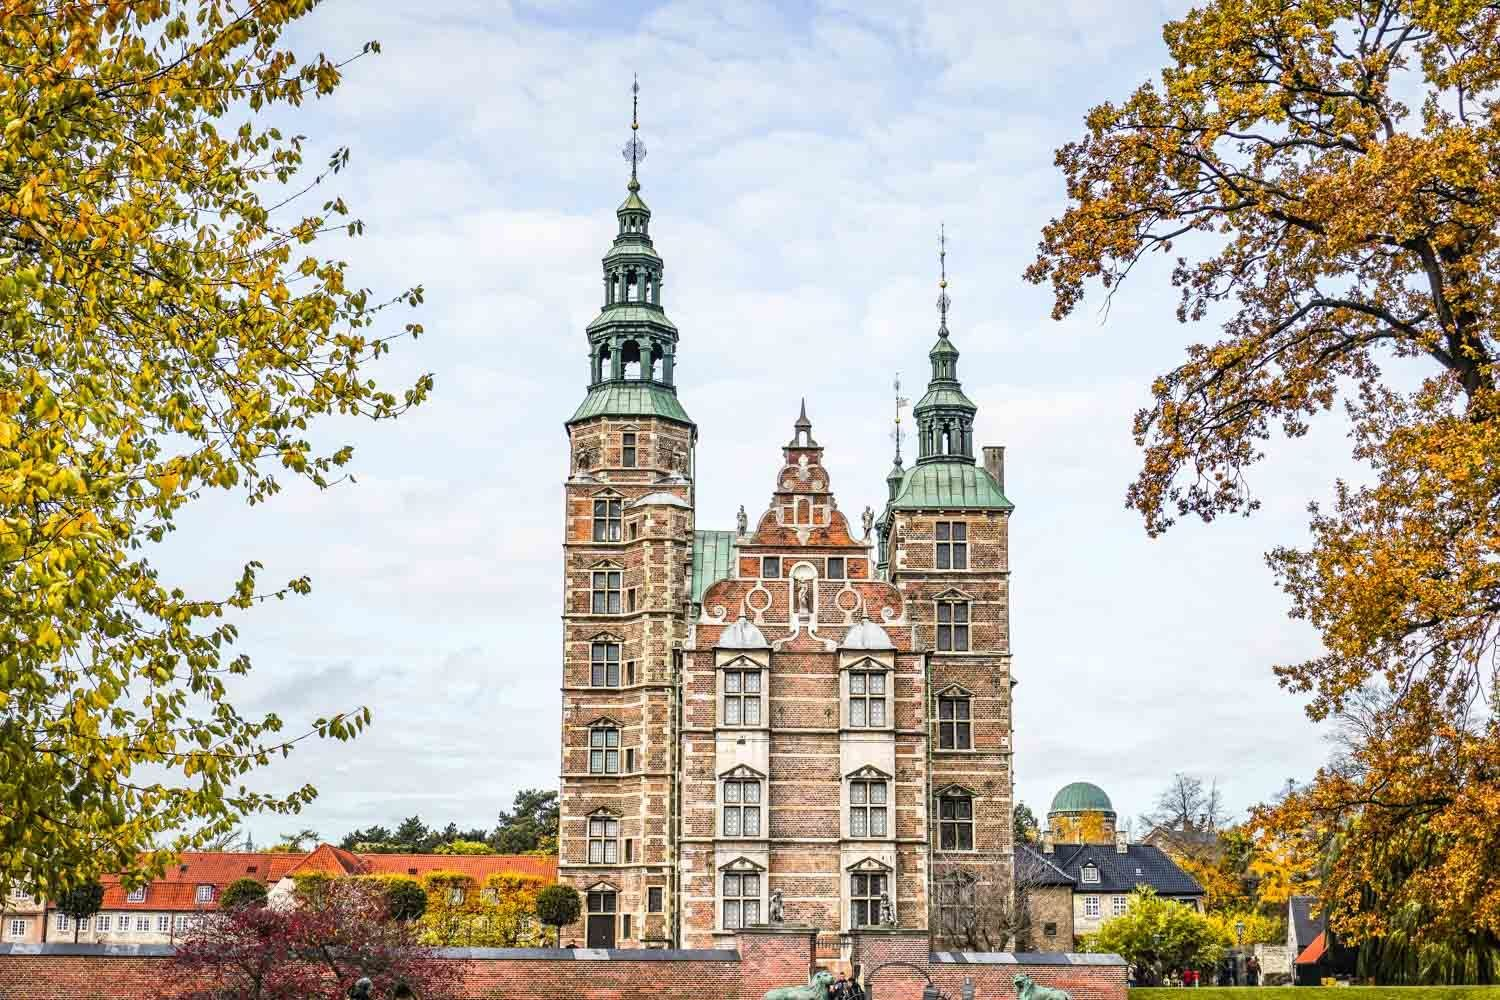 Rosenborg Castle: Cool things to do in Copenhagen